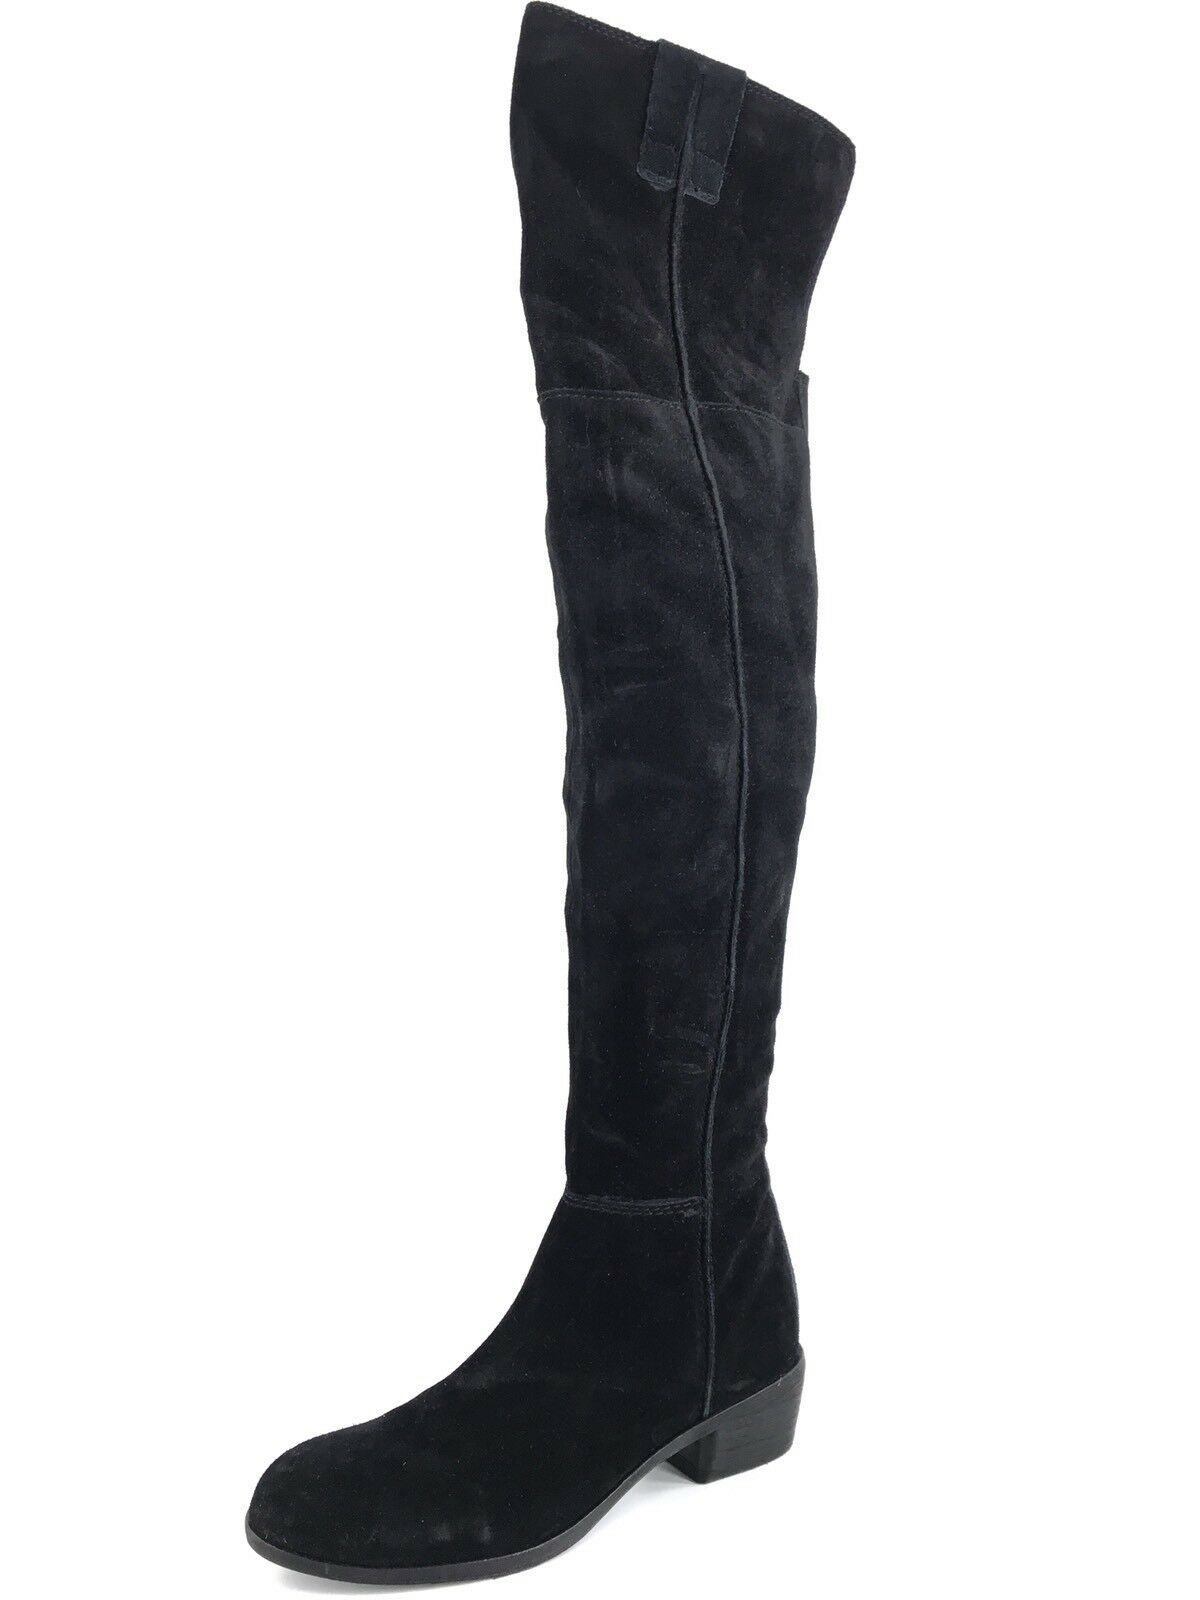 NEW $299 Sam Edelman Johanna Women's Over the Knee Knee Knee Black Suede Boots Size 5 M* 9cfab0